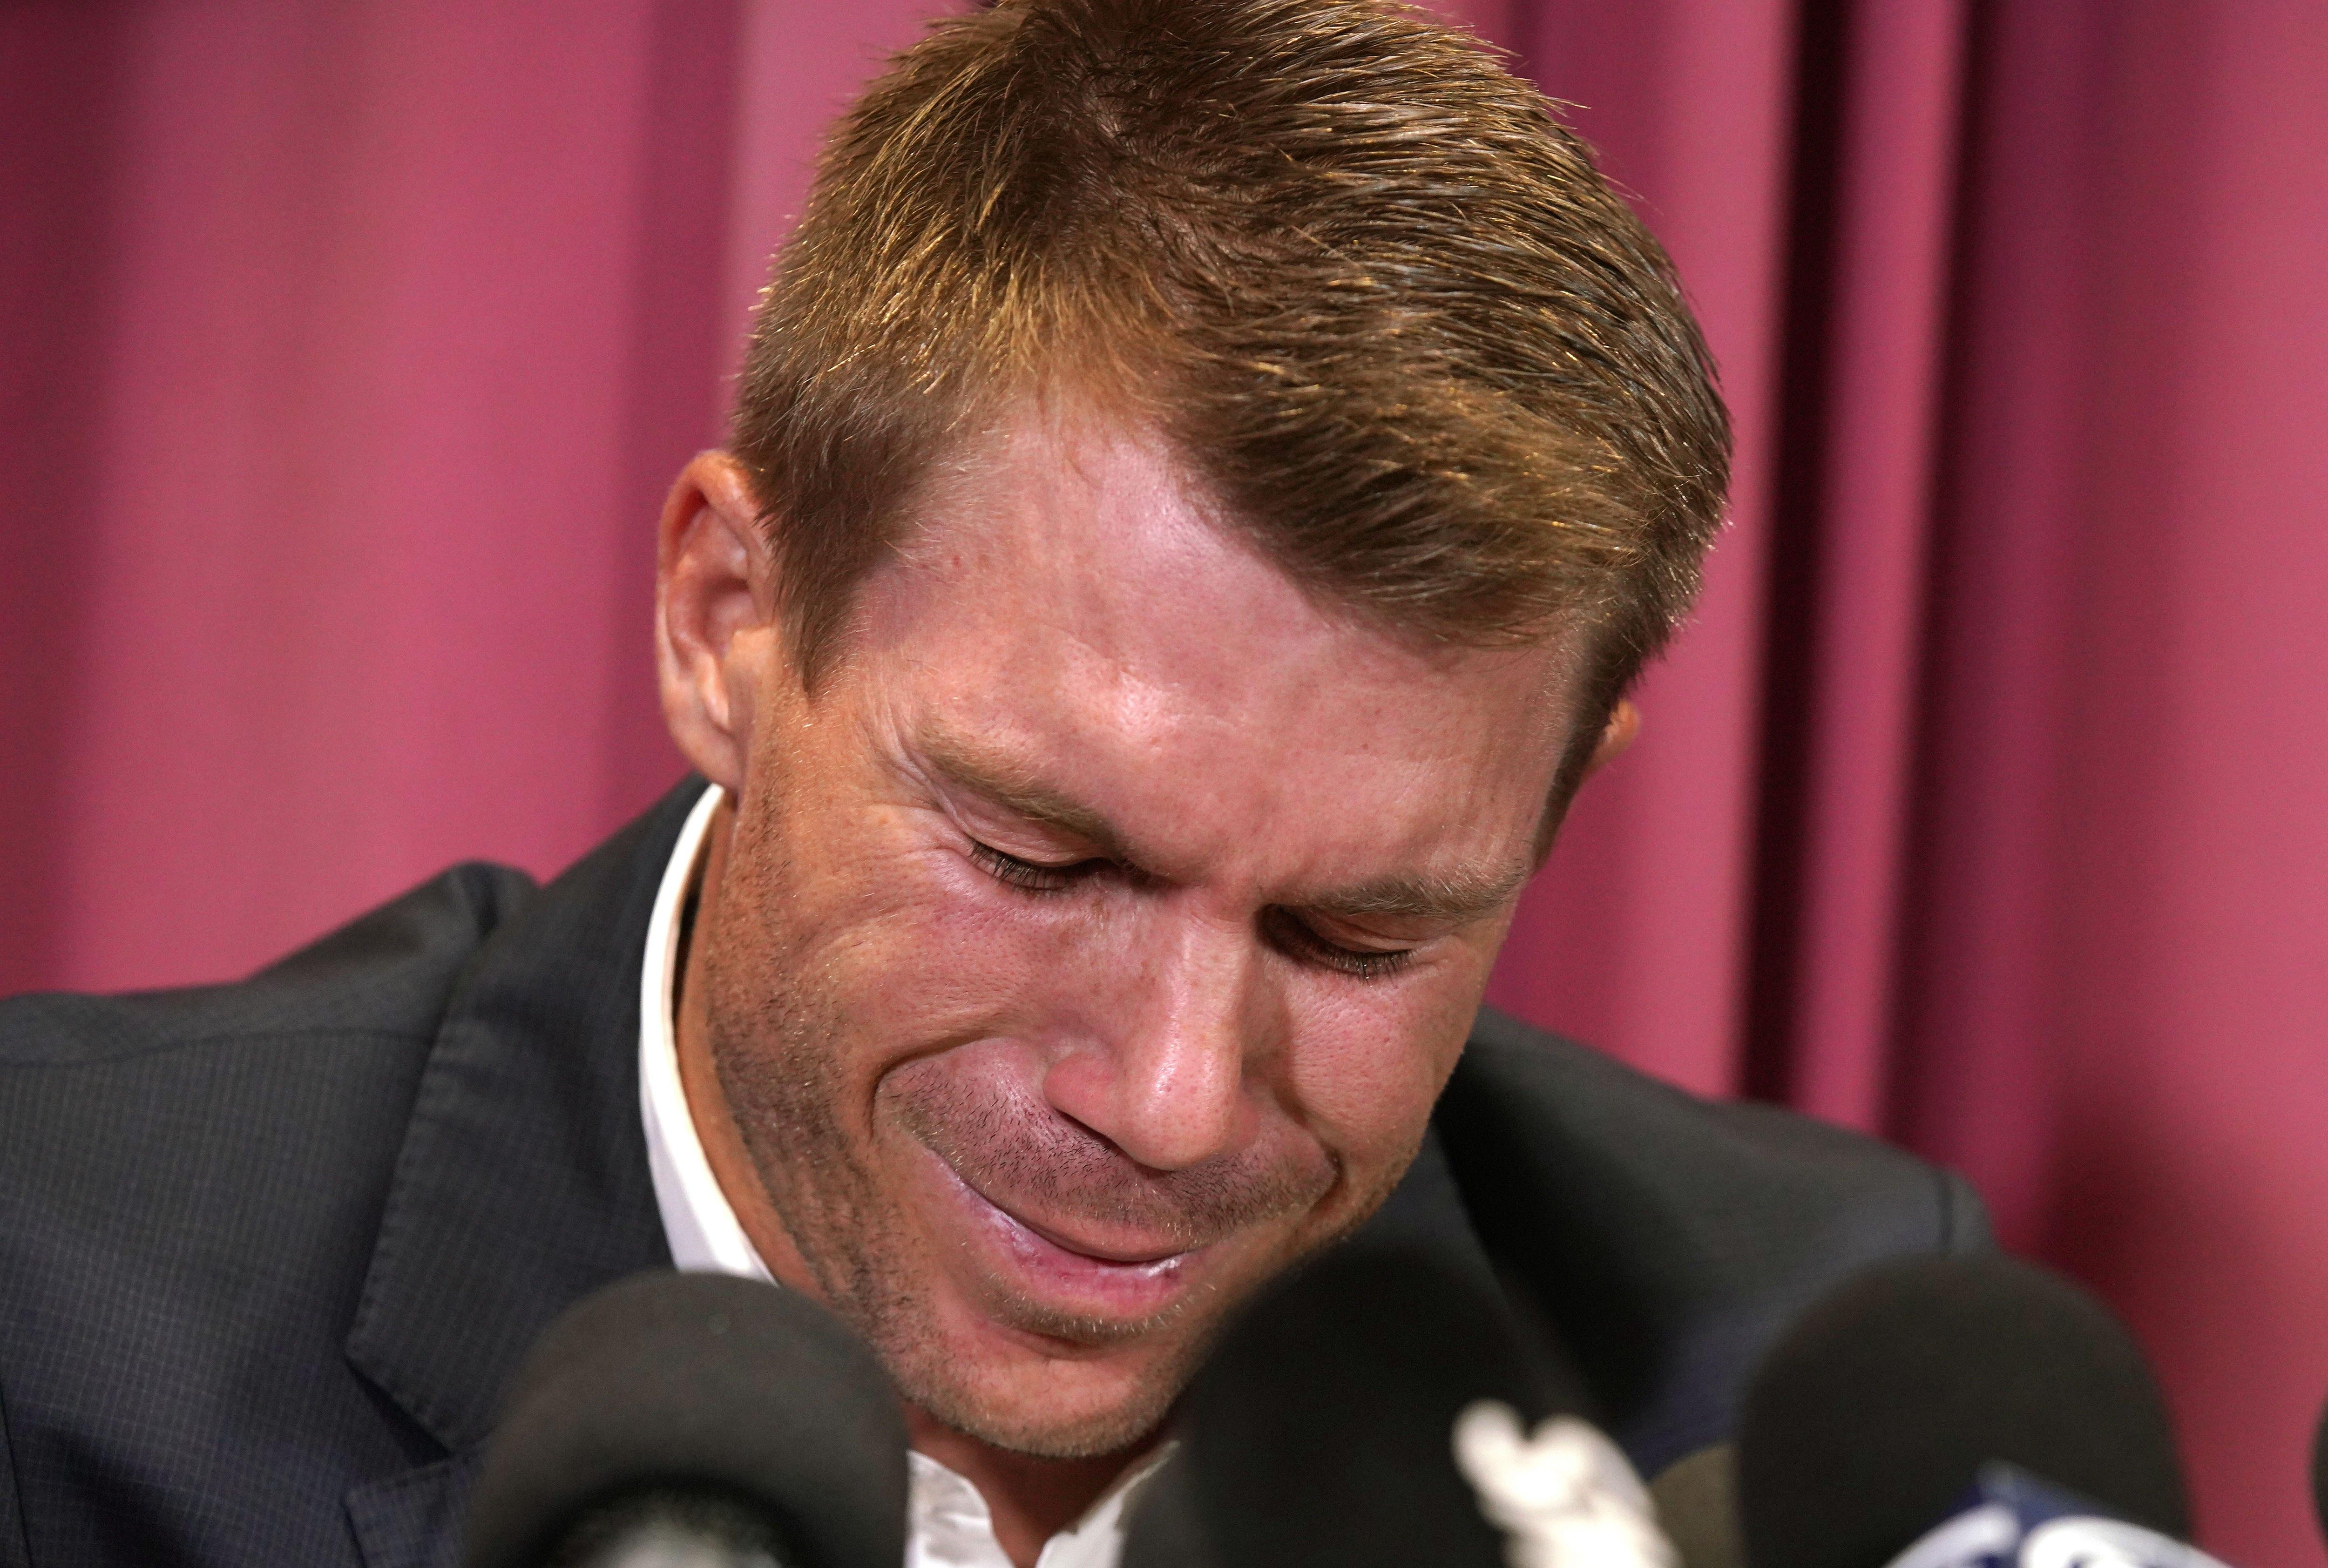 David Warner broke down in tears on his return to Australia having been sent home from South Africa in disgrace